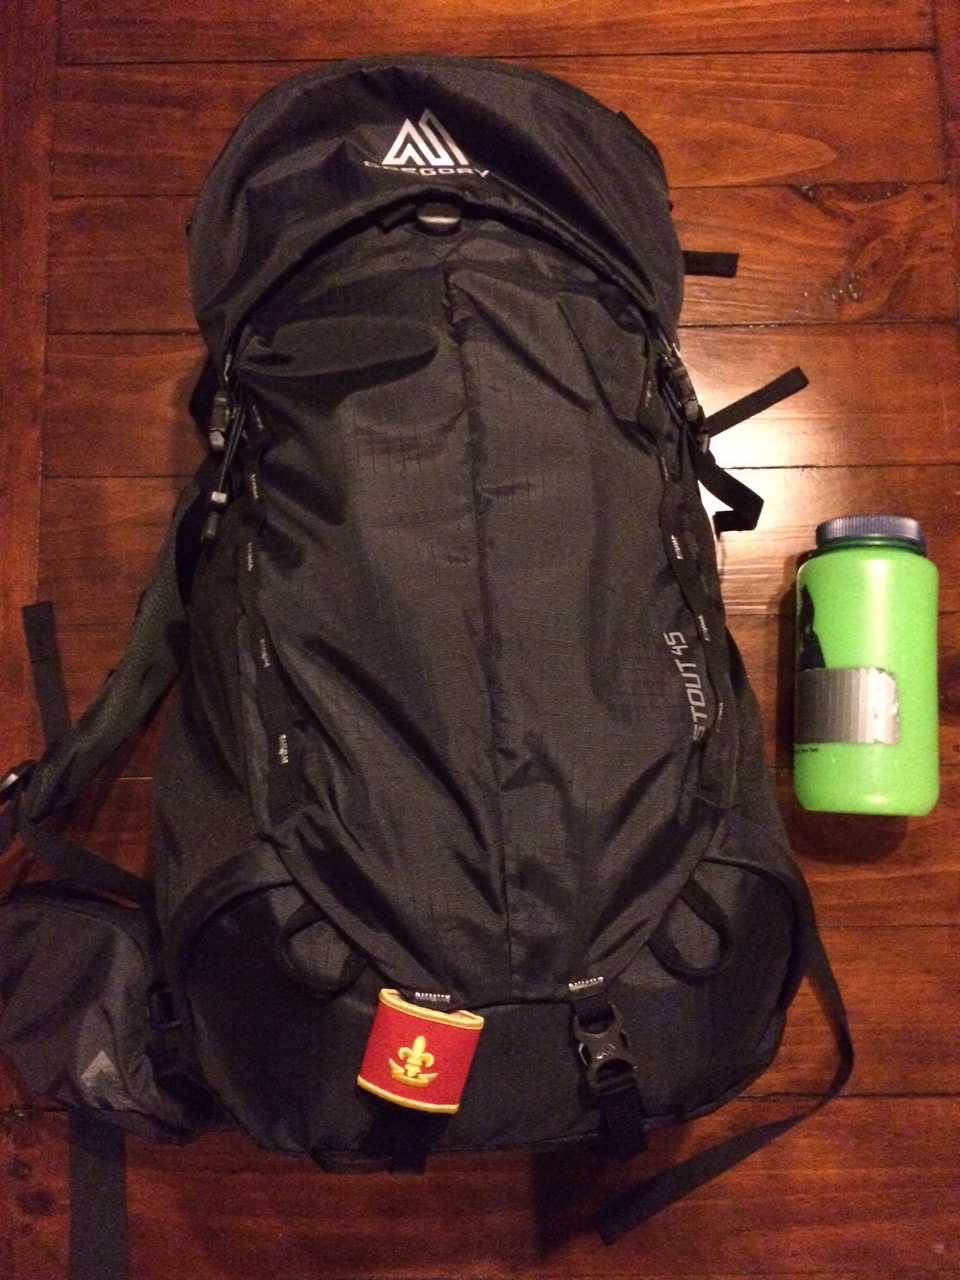 A well packed bag with individual and contingent gear can fit into a 45L pack.